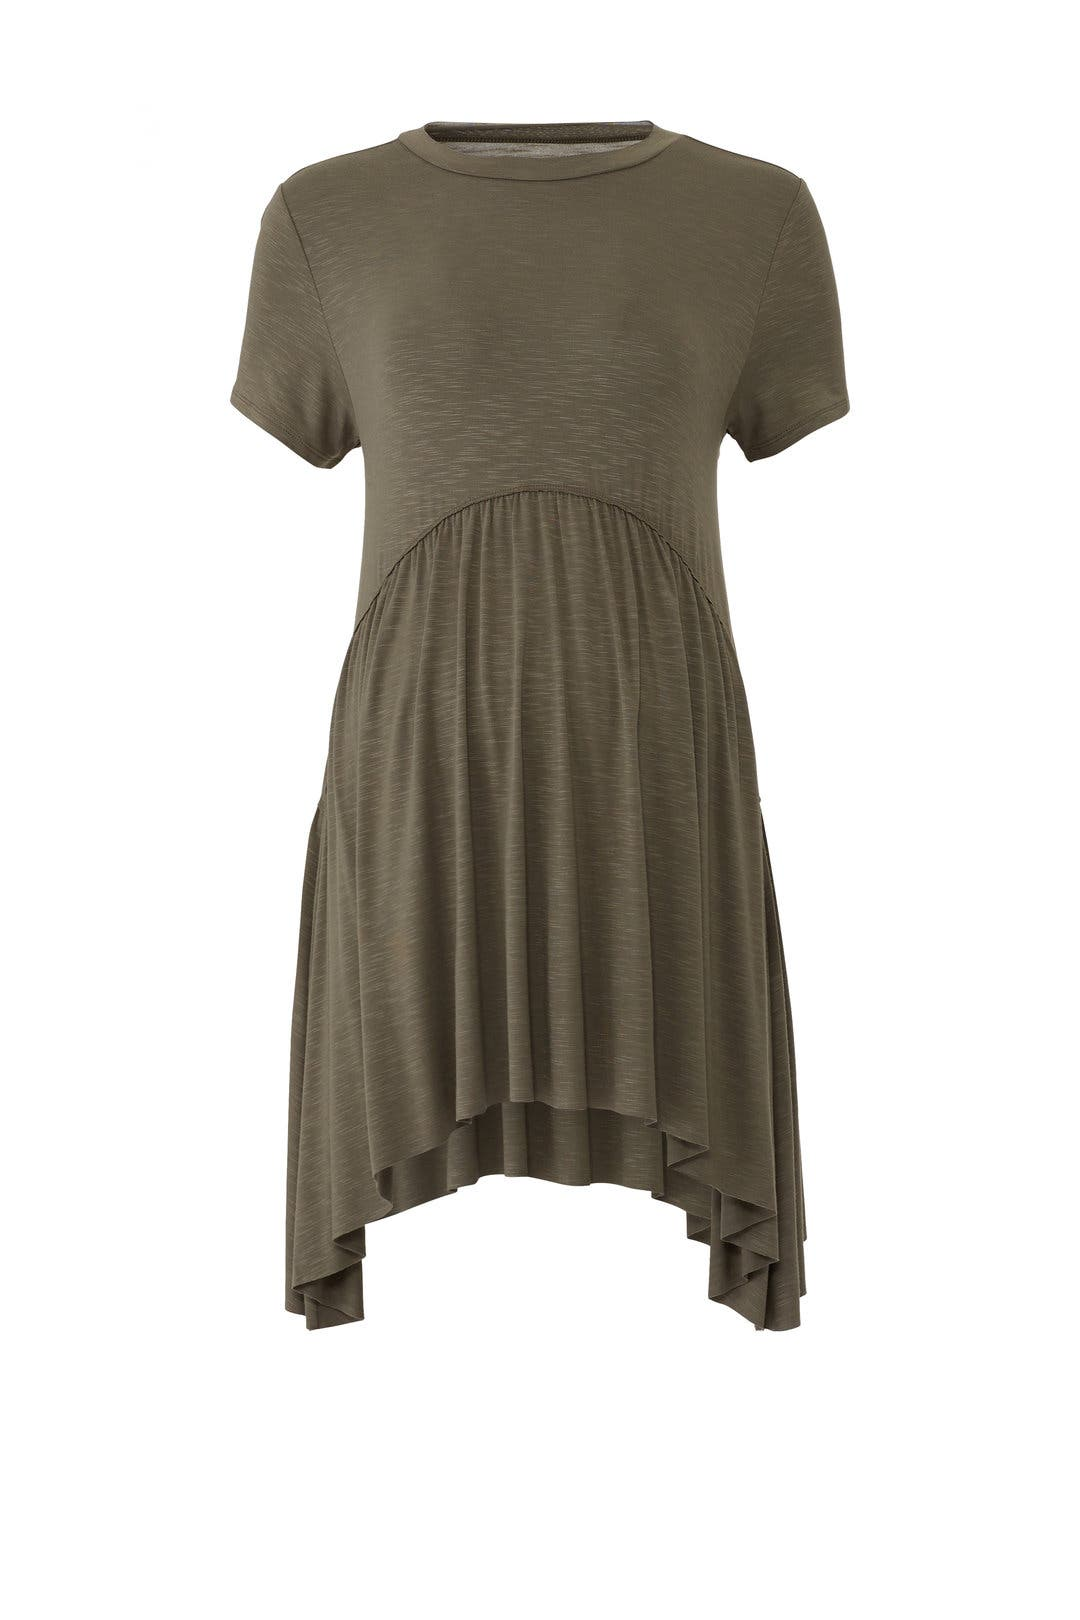 2e7c0620302e1 Ingrid & Isabel. Read Reviews. Olive Handkerchief Hem Maternity Top